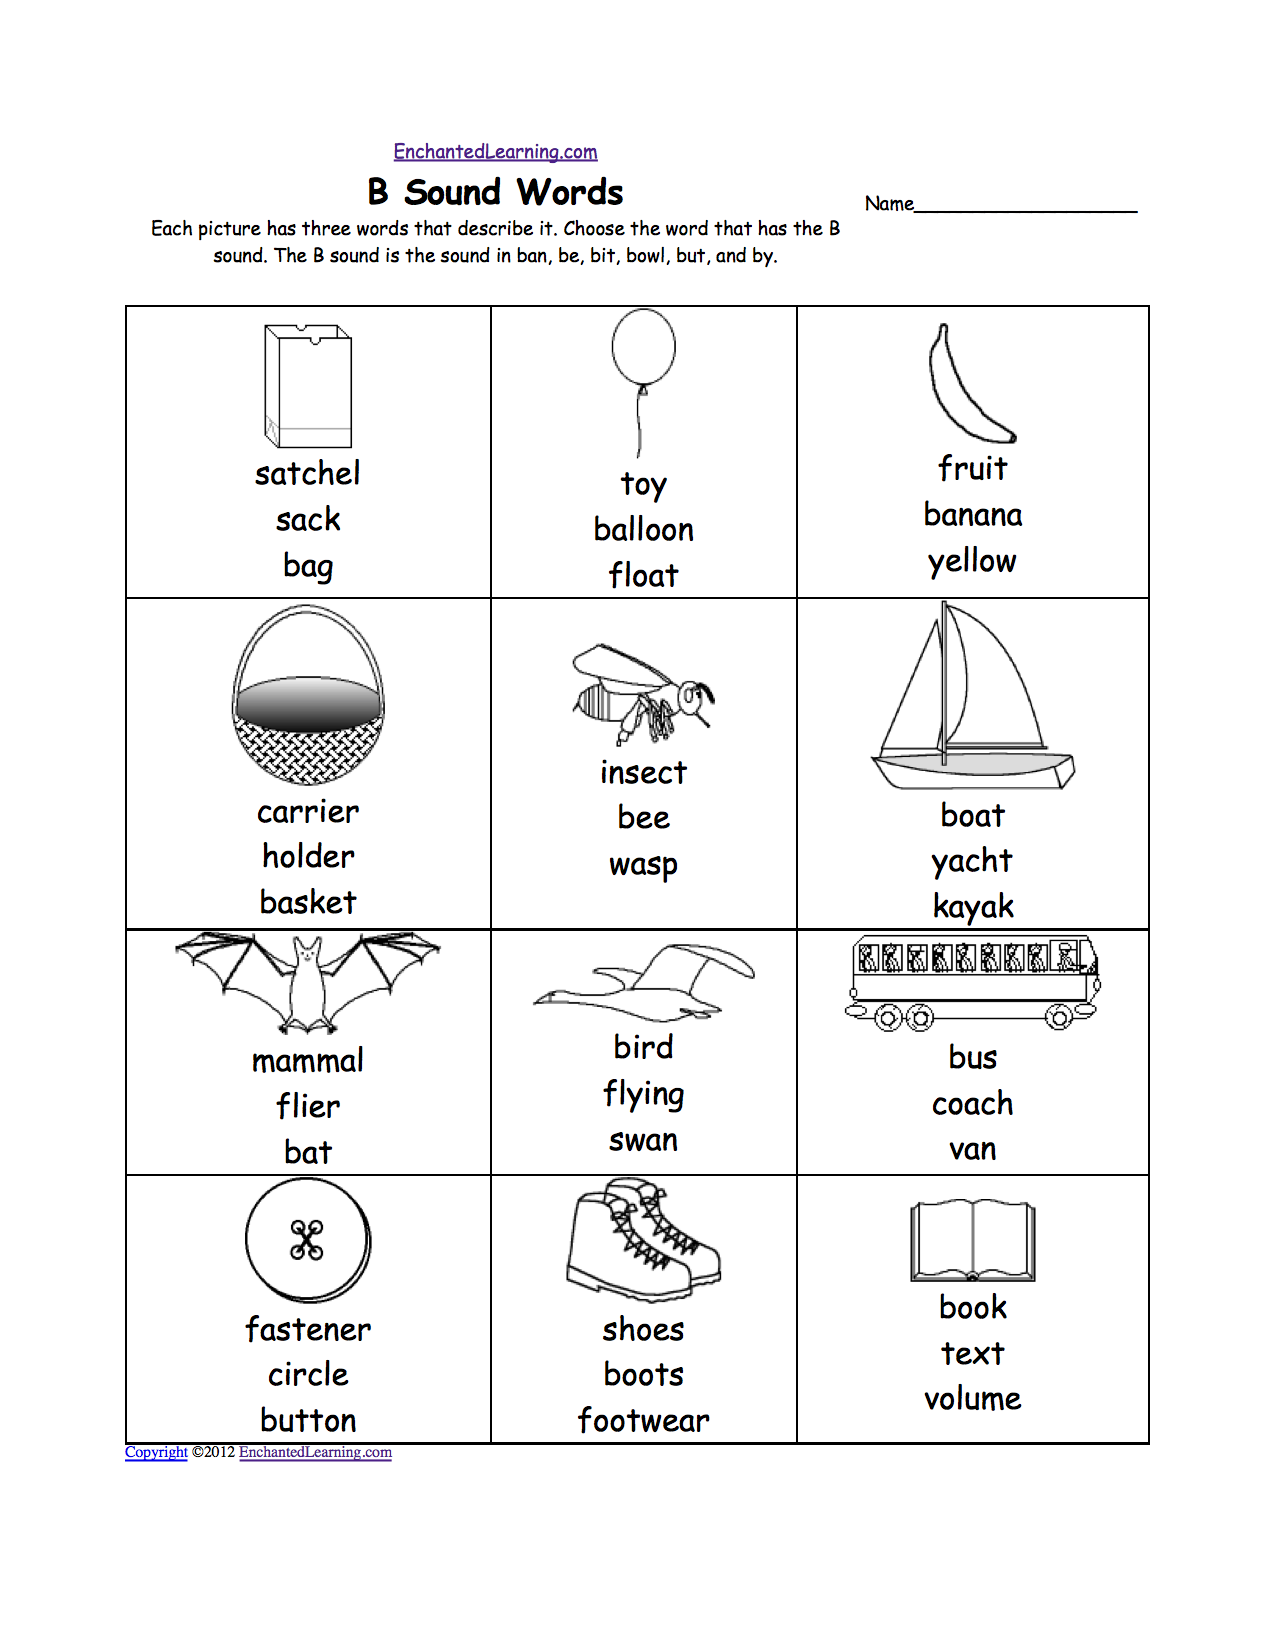 Aldiablosus  Unique Phonics Worksheets Multiple Choice Worksheets To Print  With Likable Quotbquot Sound Phonics Worksheet Multiple Choice Each Picture Has Three Words That Describe It Choose The Word That Has A Quotbquot Sound The Quotbquot Sound Is The Sound  With Captivating Grade  Graphing Worksheets Also Angles Worksheet Grade  In Addition Dads Maths Worksheets And Sight Word Practice Worksheet As Well As Free Printable Maths Worksheets For Grade  Additionally Preschool Printable Worksheet From Enchantedlearningcom With Aldiablosus  Likable Phonics Worksheets Multiple Choice Worksheets To Print  With Captivating Quotbquot Sound Phonics Worksheet Multiple Choice Each Picture Has Three Words That Describe It Choose The Word That Has A Quotbquot Sound The Quotbquot Sound Is The Sound  And Unique Grade  Graphing Worksheets Also Angles Worksheet Grade  In Addition Dads Maths Worksheets From Enchantedlearningcom